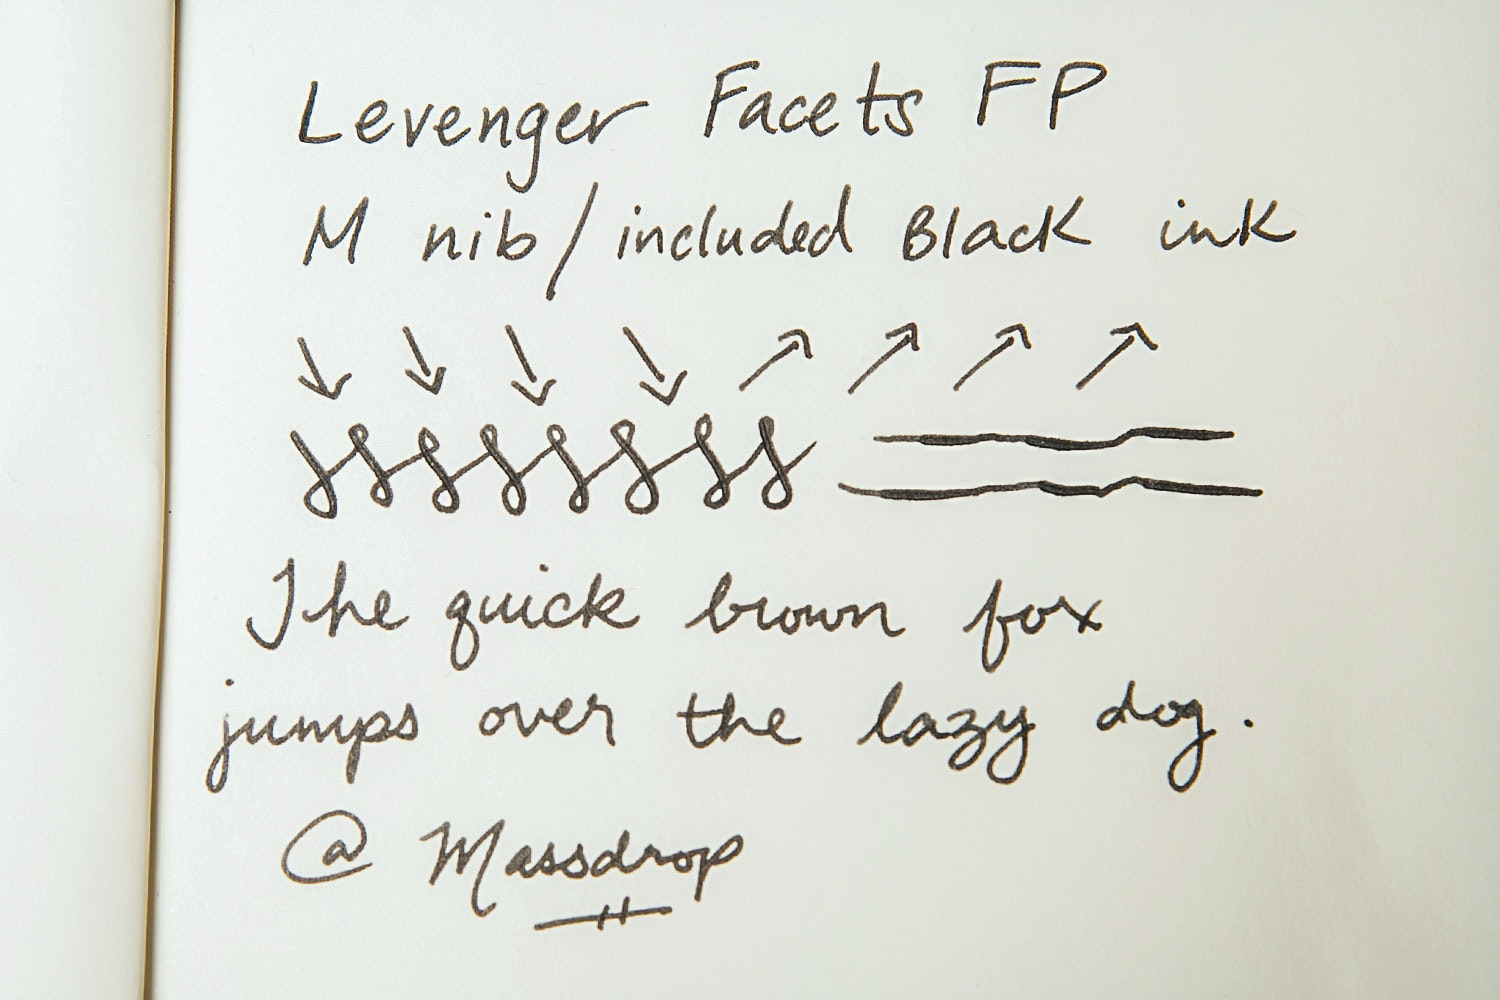 Levenger Facets Fountain Pen